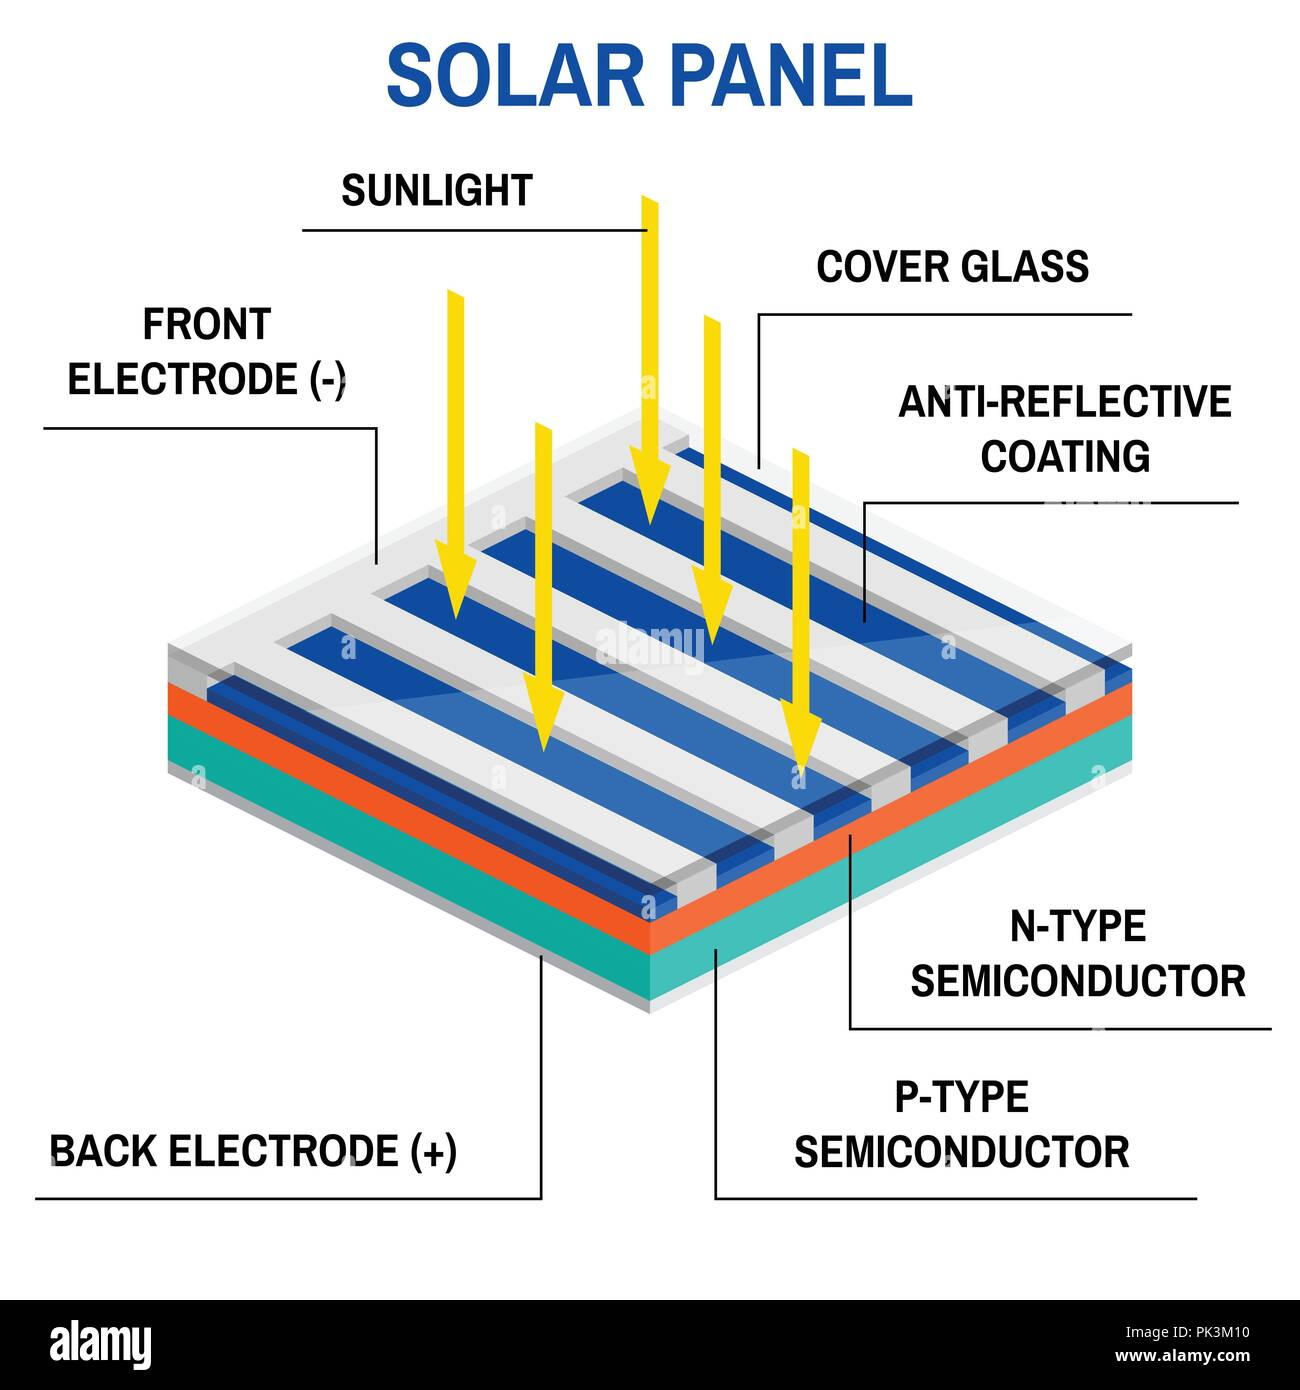 Process Of Converting Light To Electricity Renewable Energy Concept Solar Panel Diagram Simplified An Off Grid System Vector Illustration